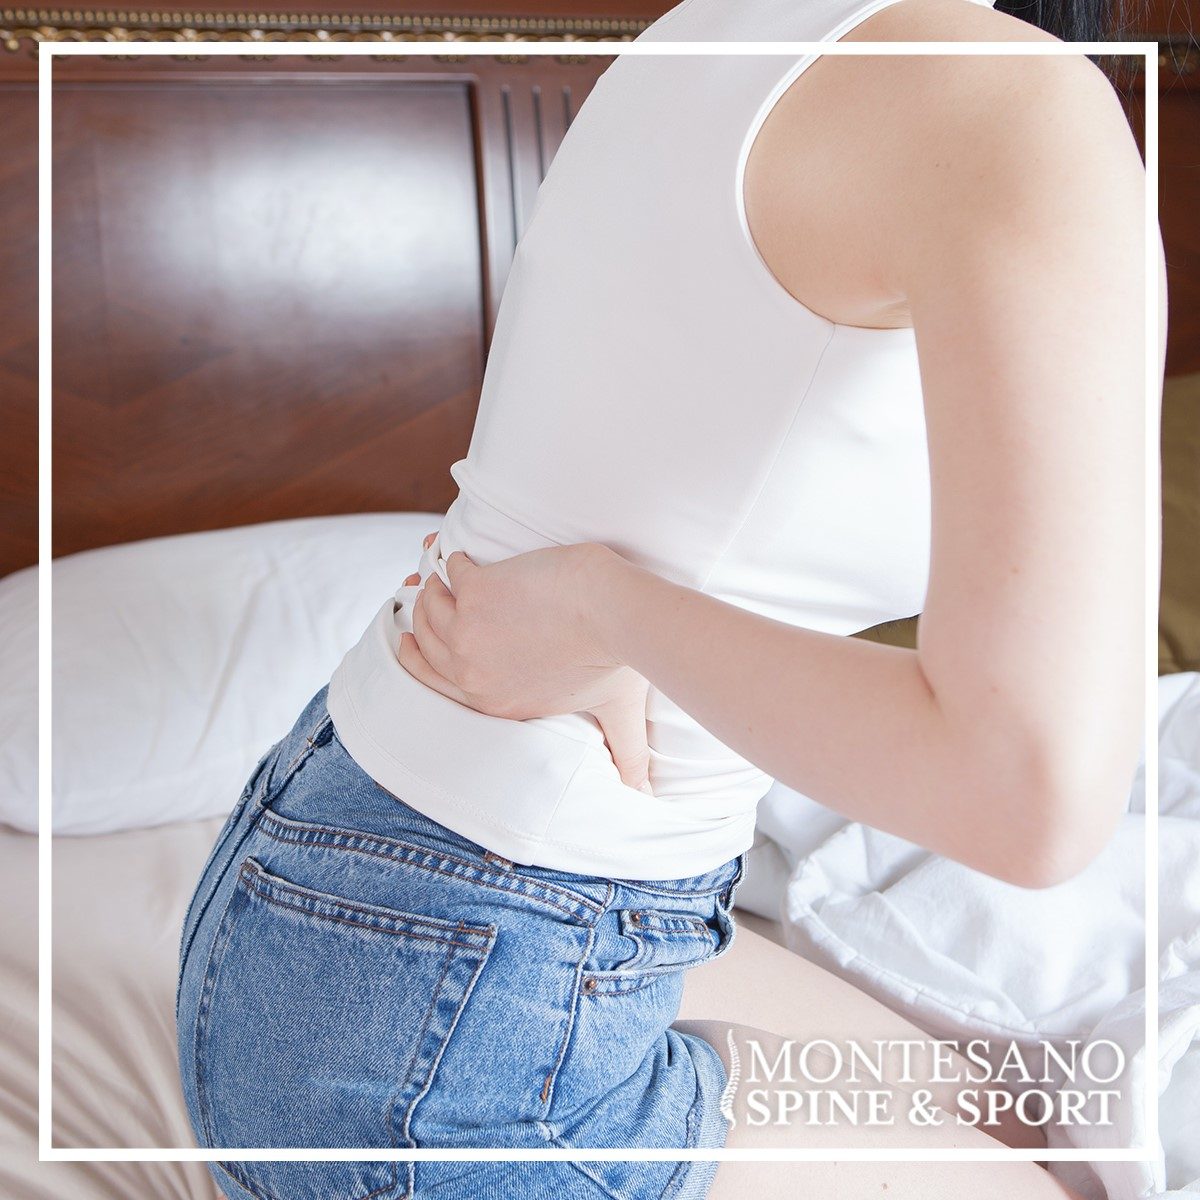 Read more about the article Spinal Stenosis